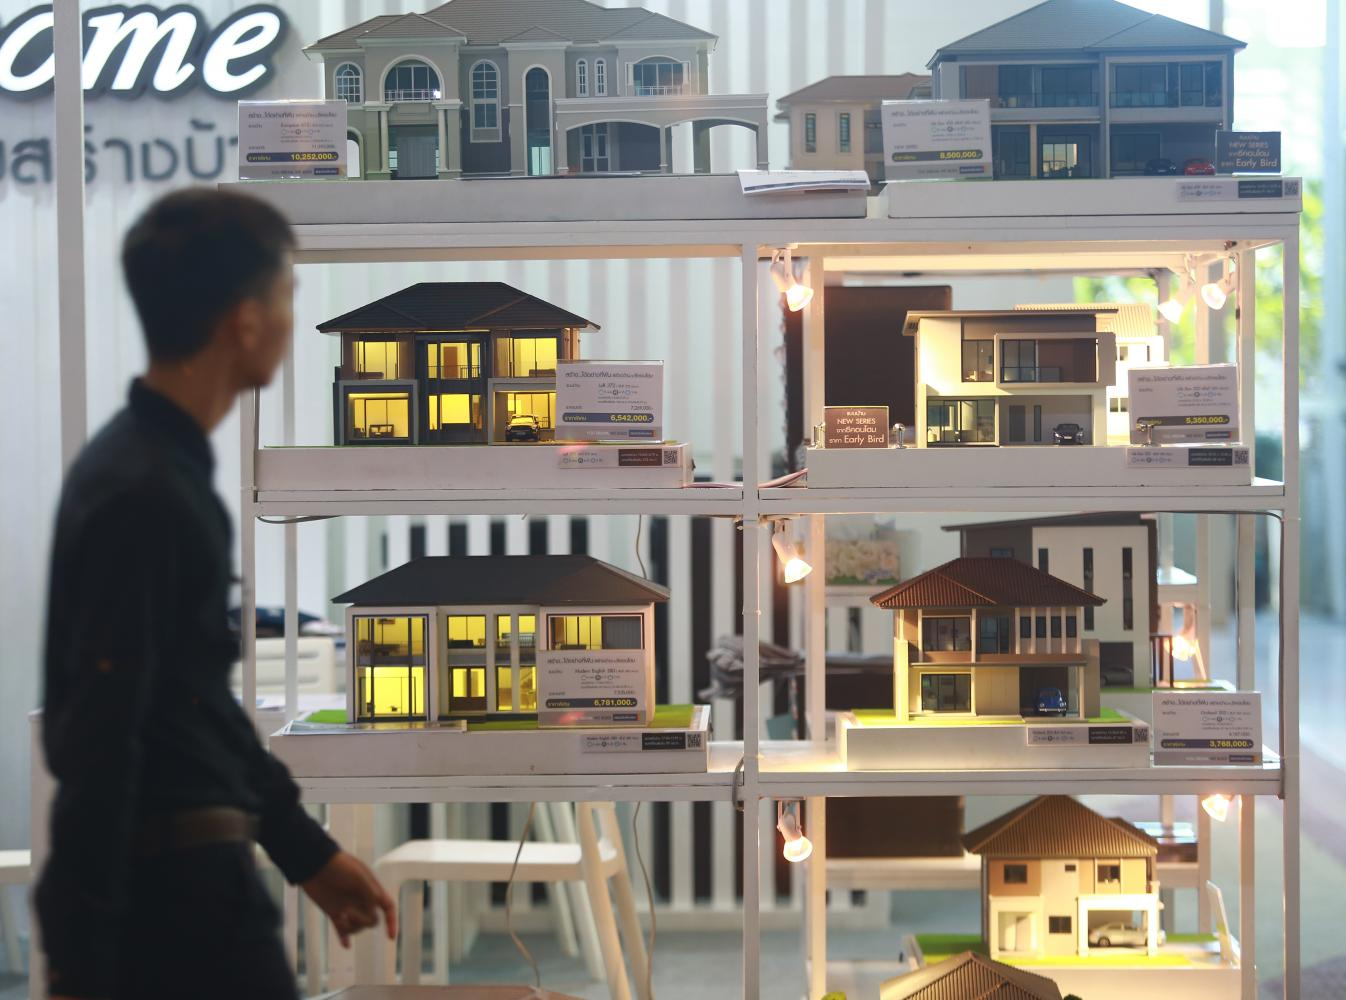 A man browses townhouse models displayed at a House and Condo Fair.